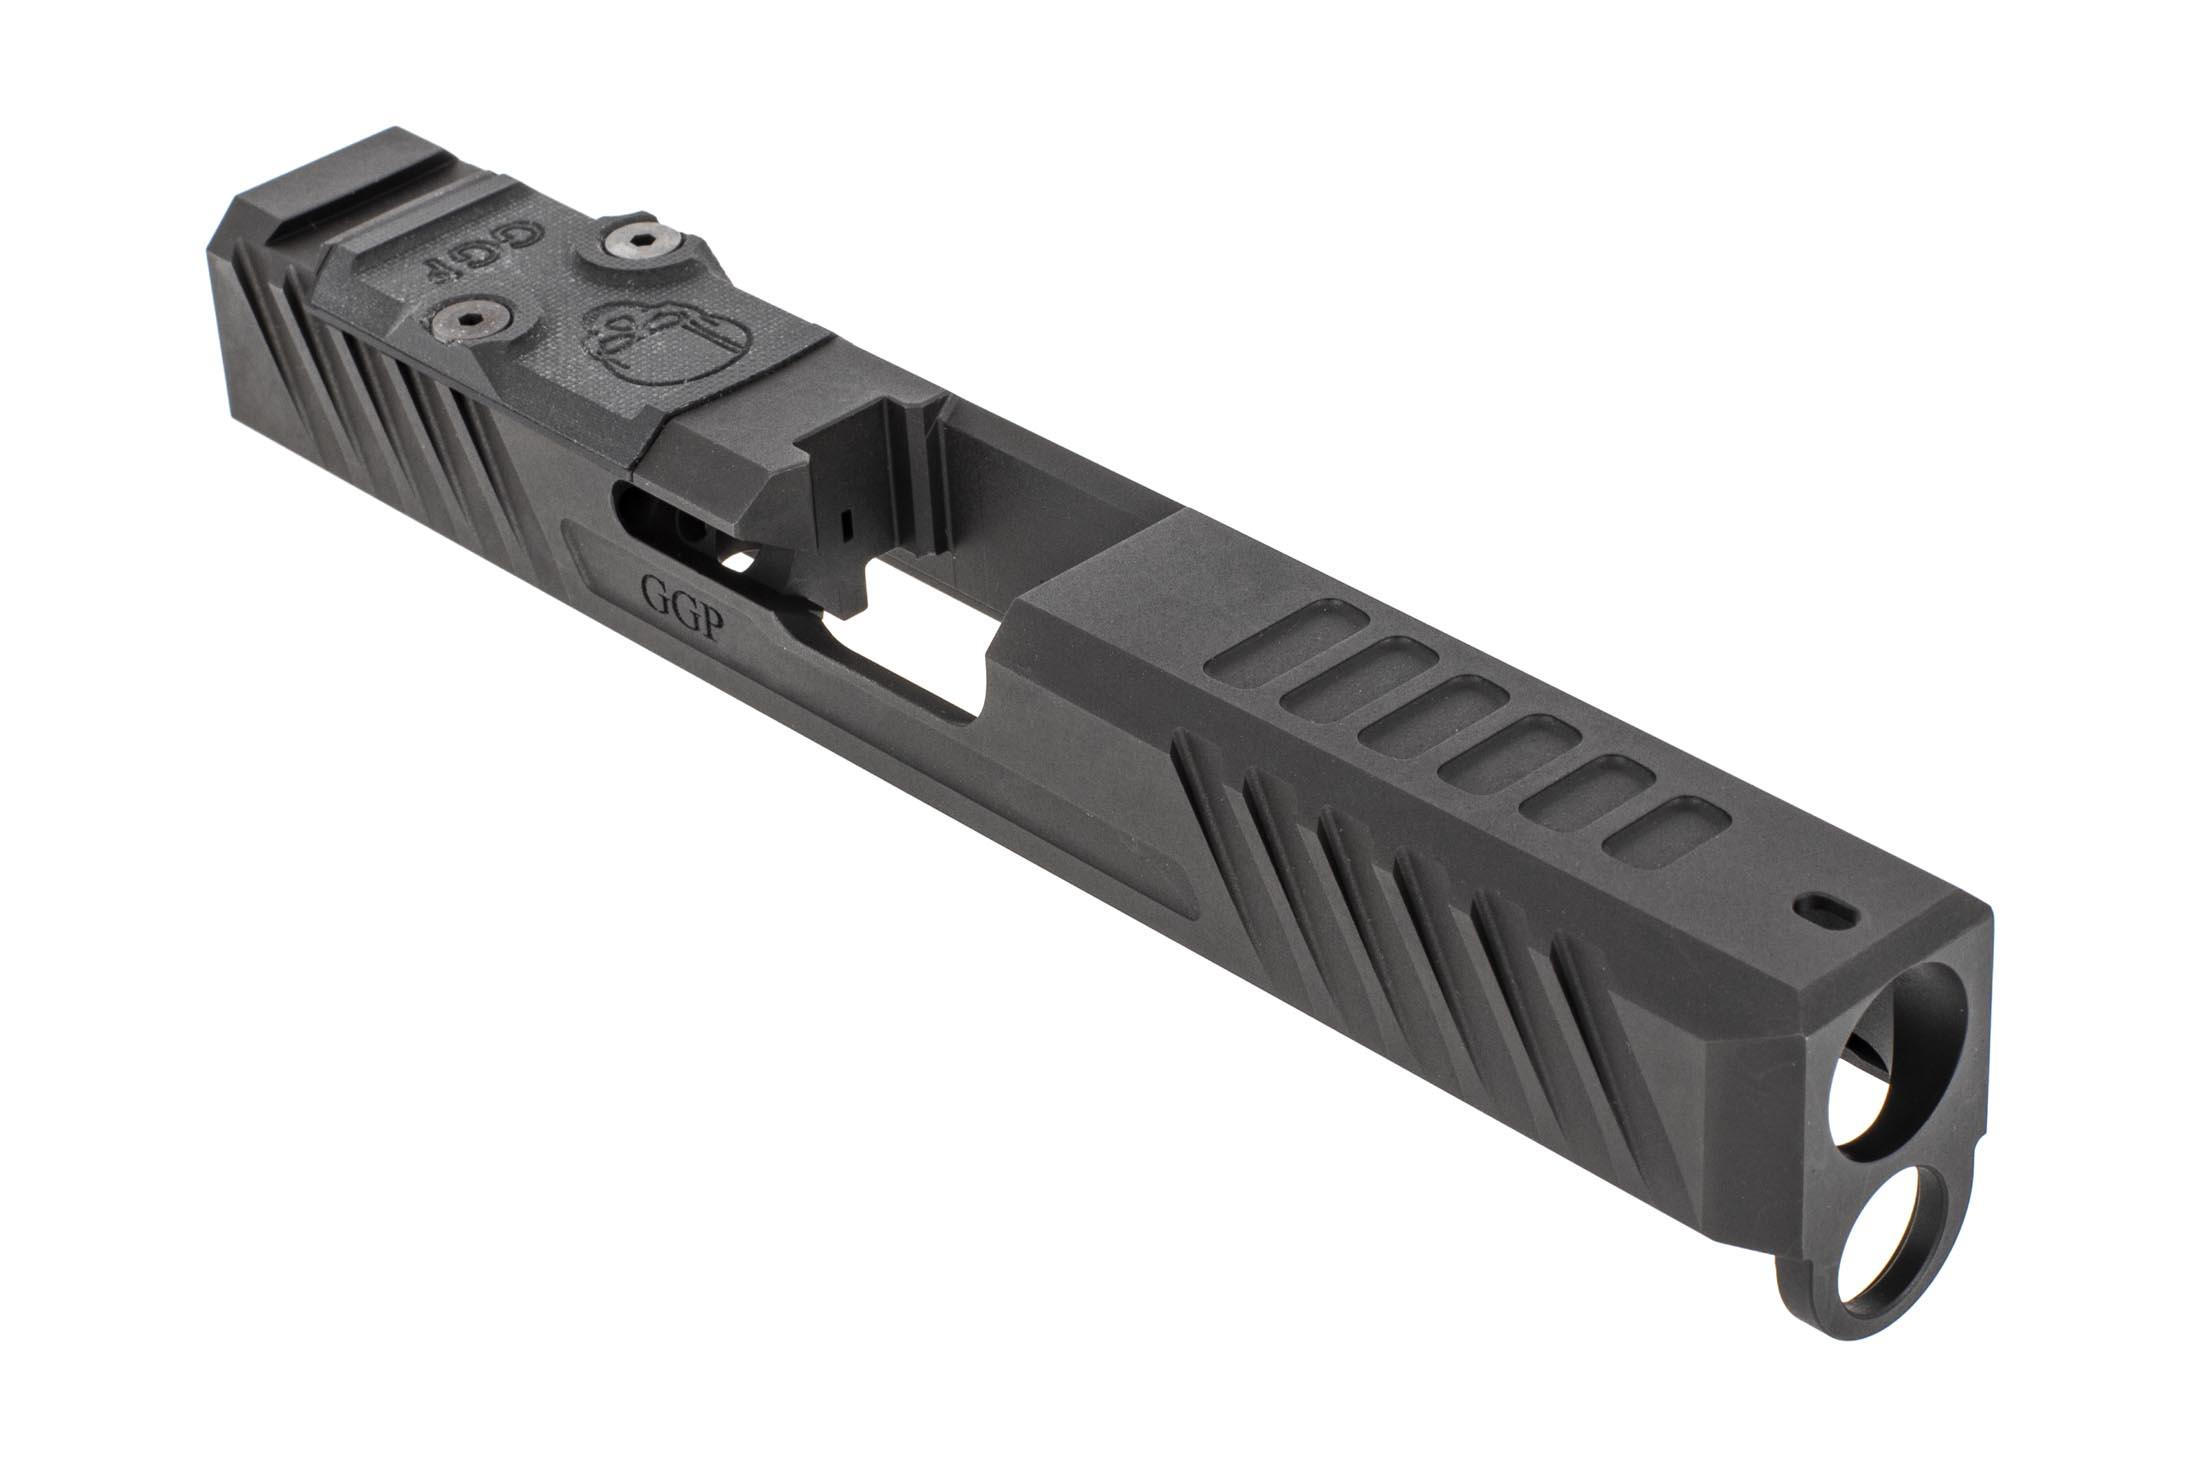 Grey Ghost Precision stripped Version3 Glock 17 Gen 4 slide with dual optic cut for RMR and DeltaPoint Pro